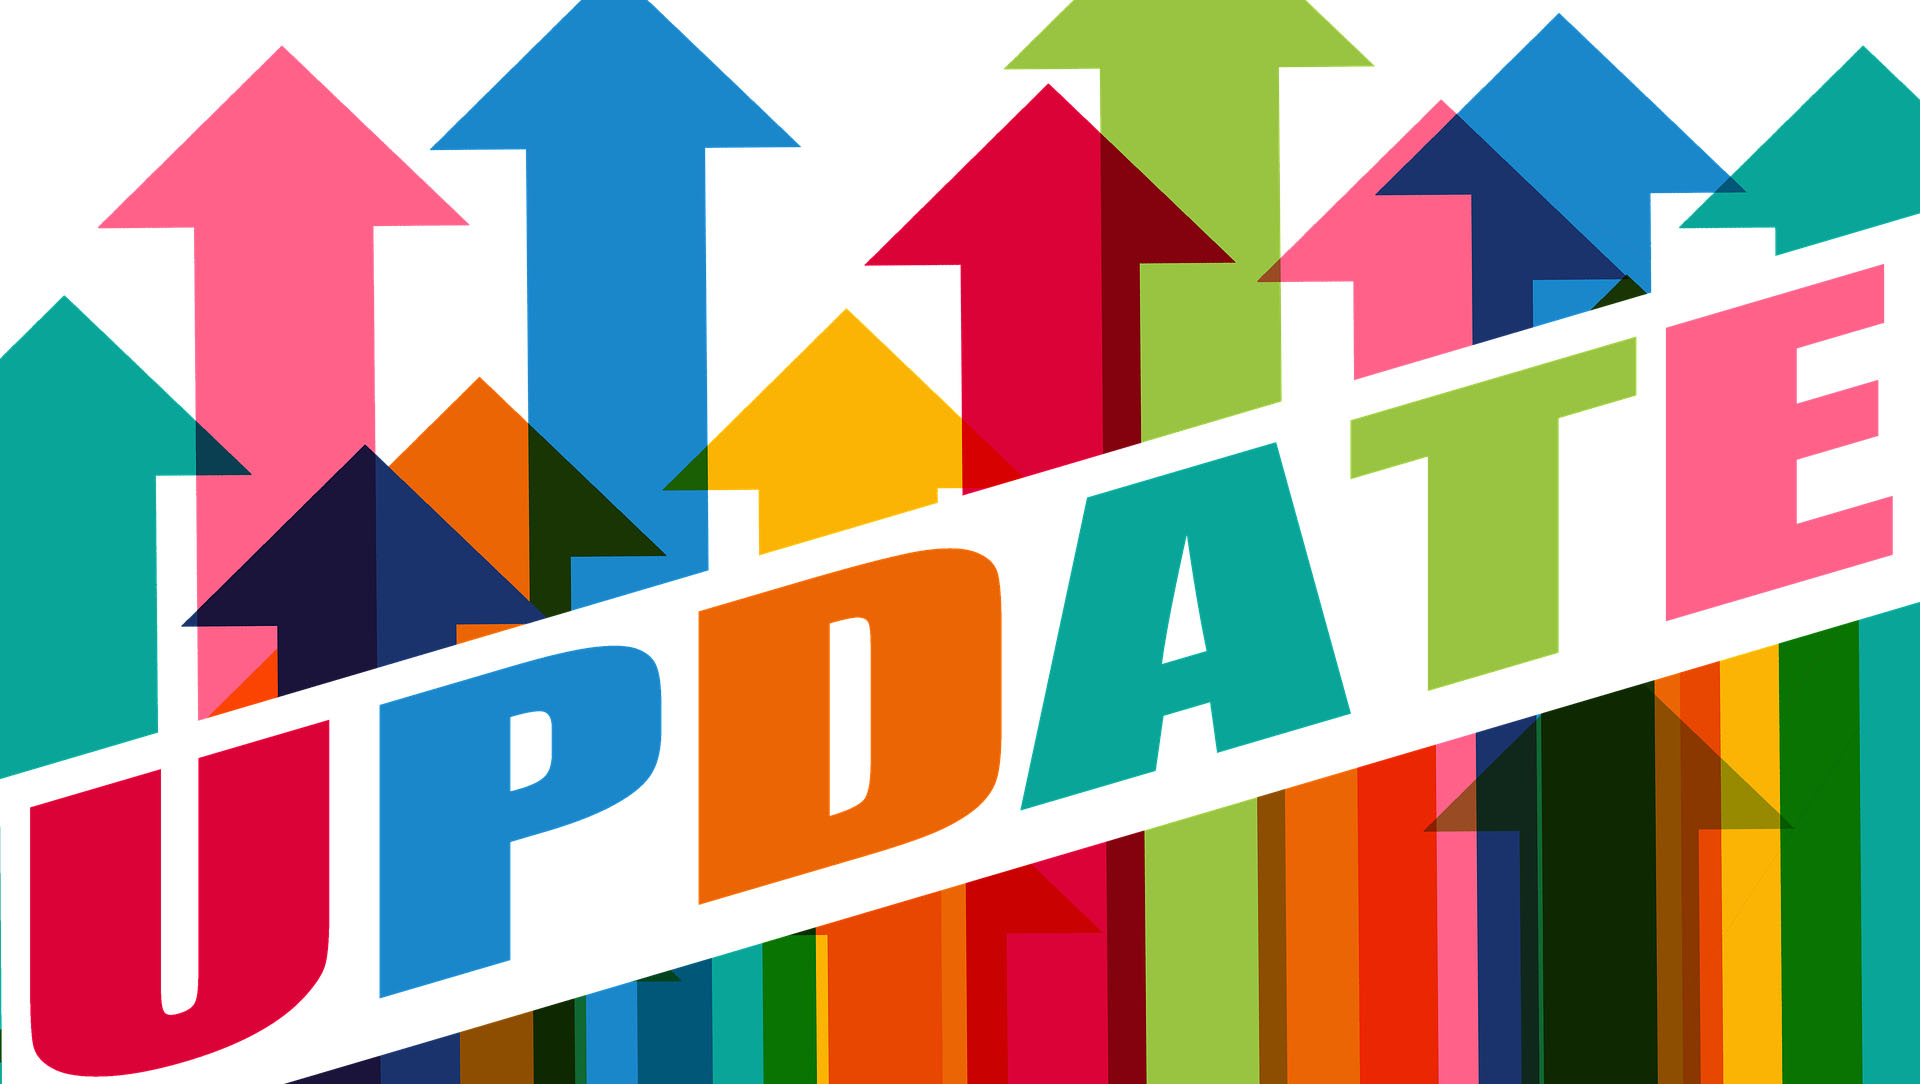 Update on Interventional Radiology Coding and Billing